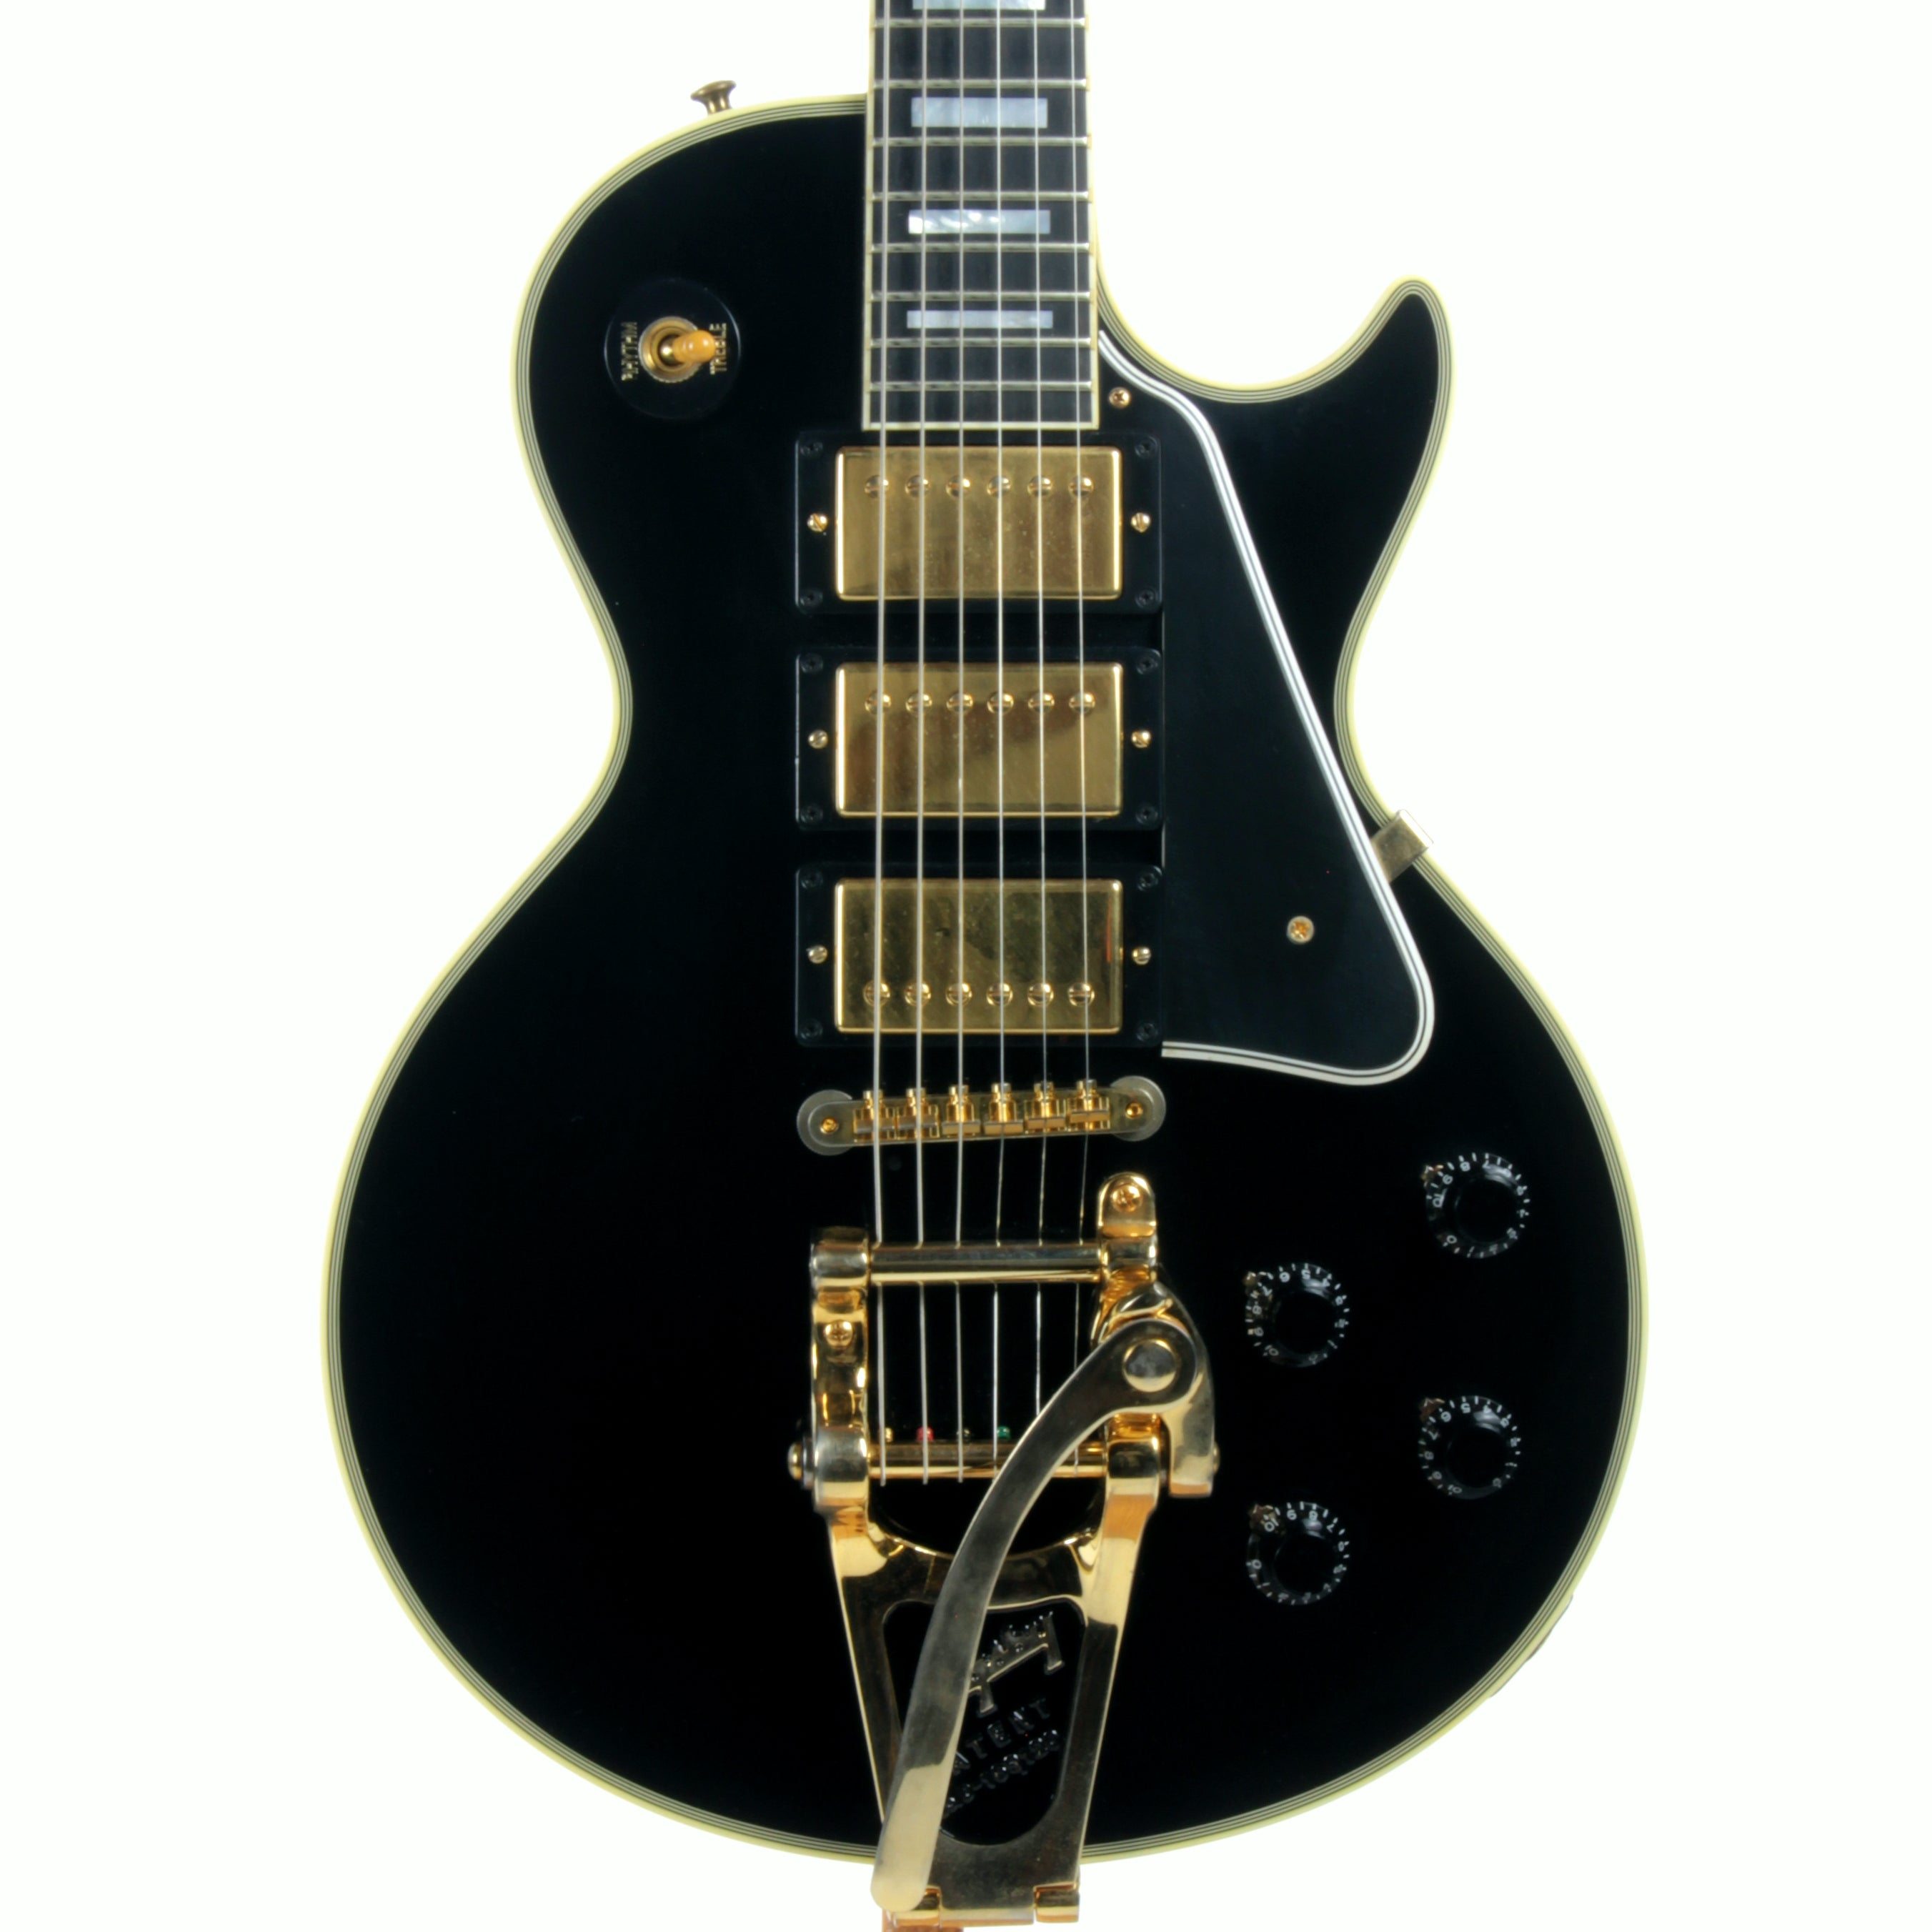 1957 Gibson Les Paul Custom Reissue Bigsby 3 Pickups! LPB-3 Black Beauty Historic 57